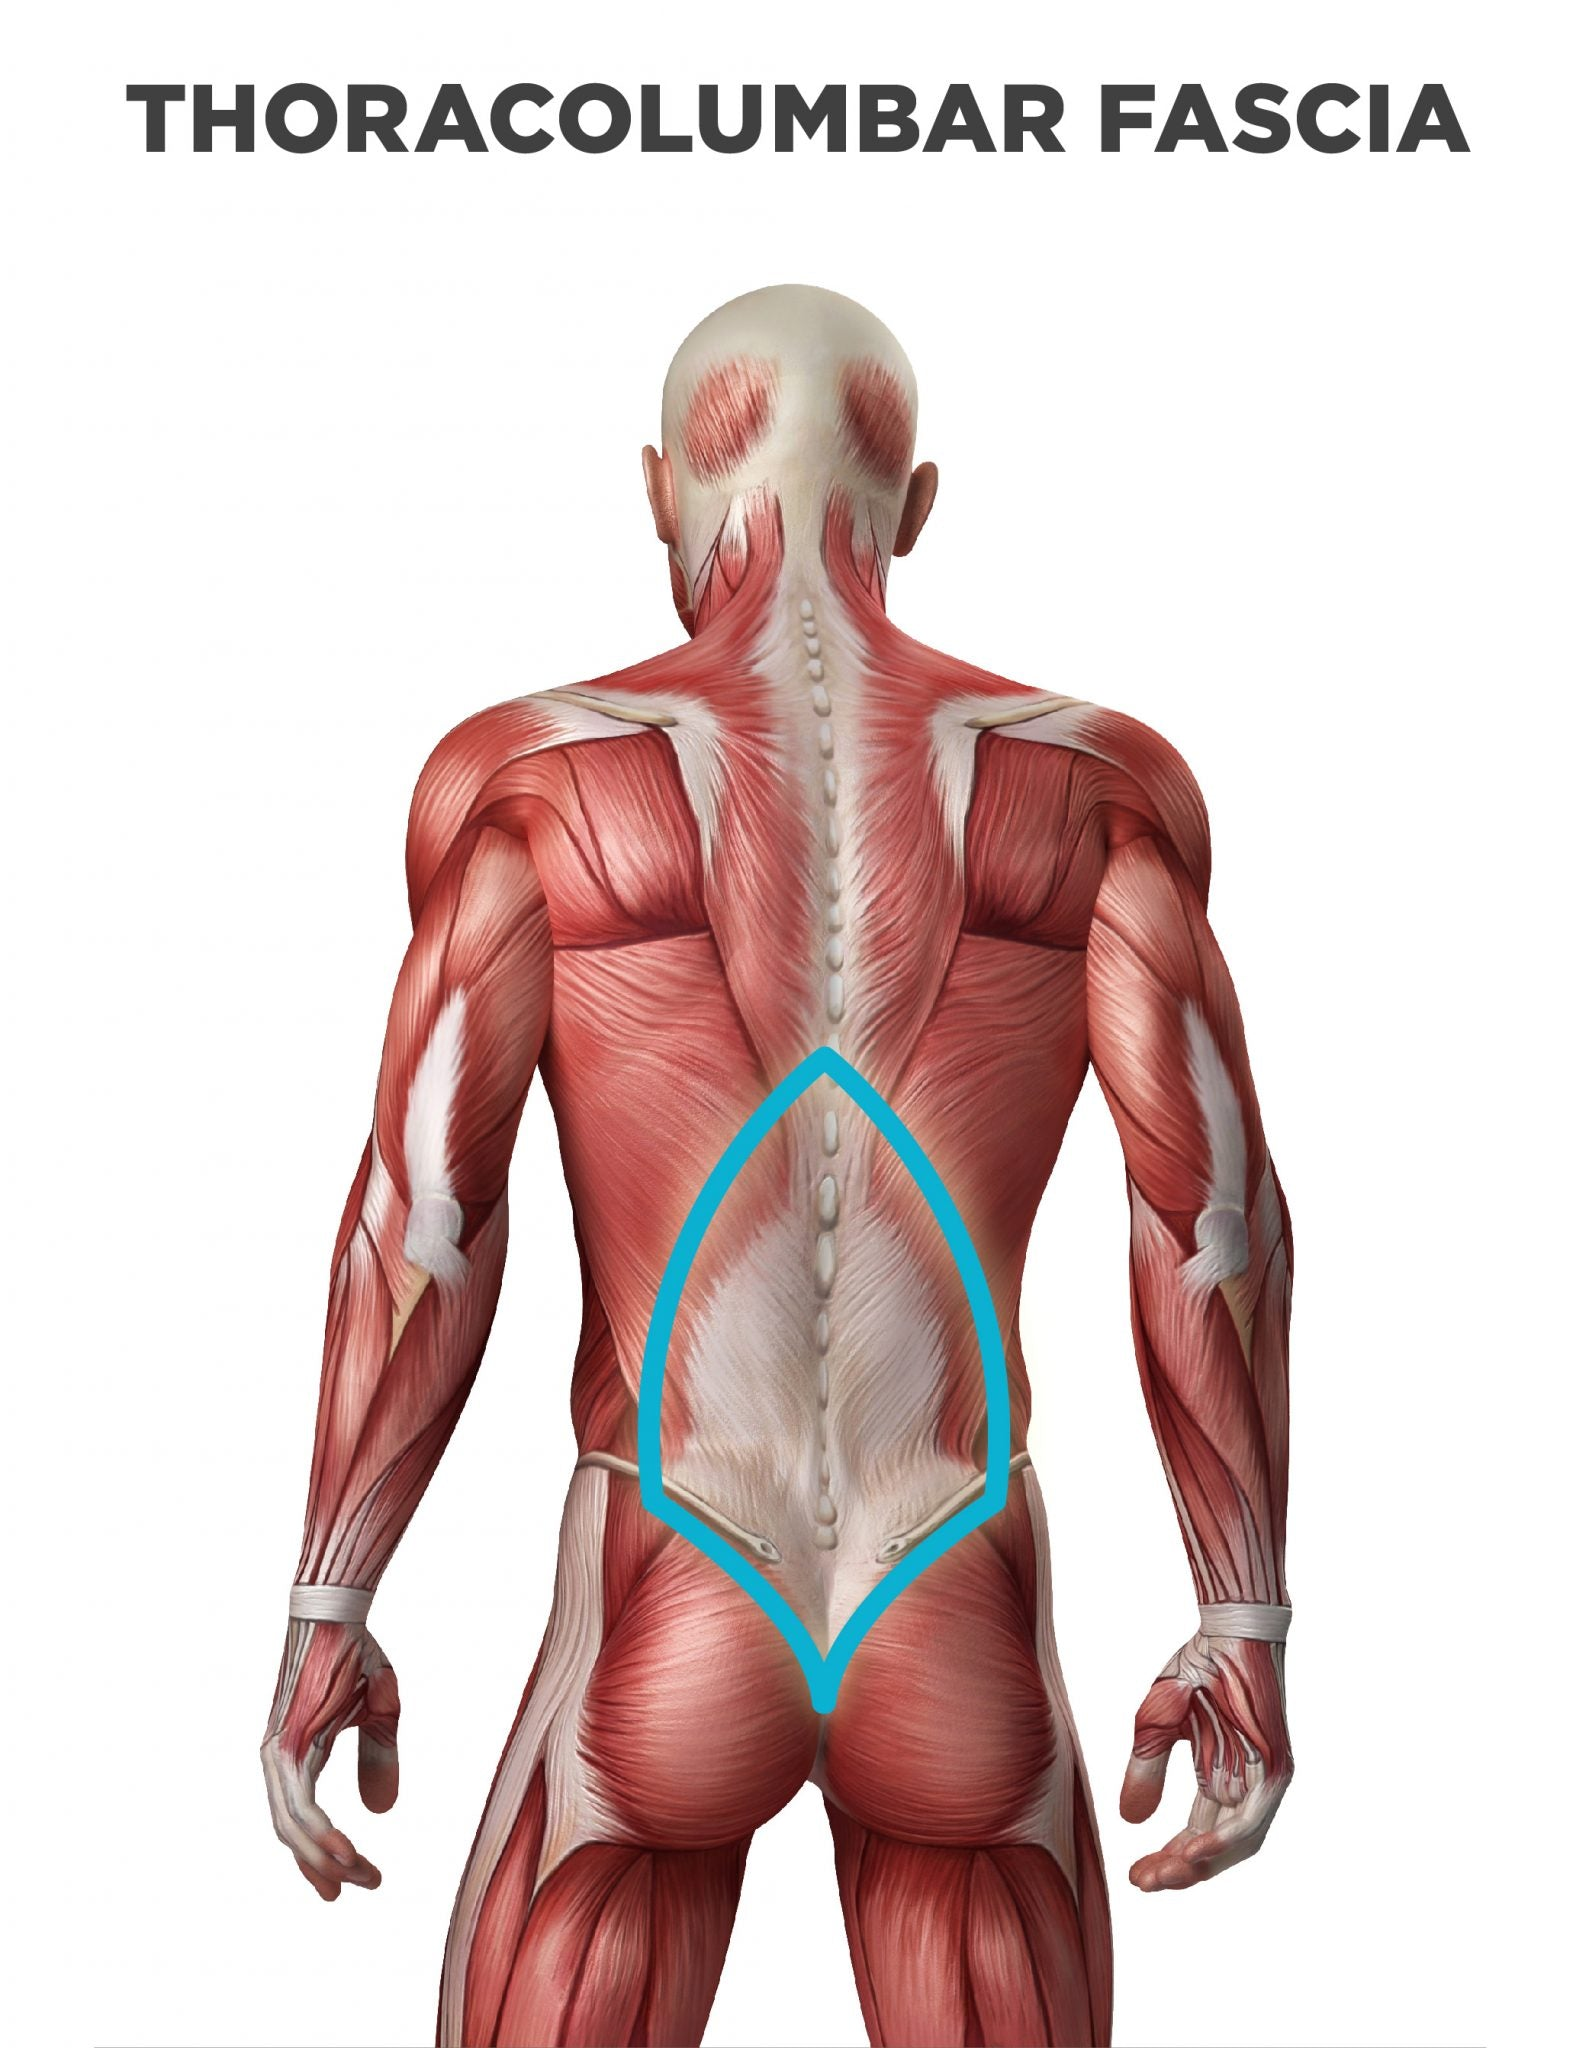 Thoracolumbar junction in the lower back location of SI joint pain